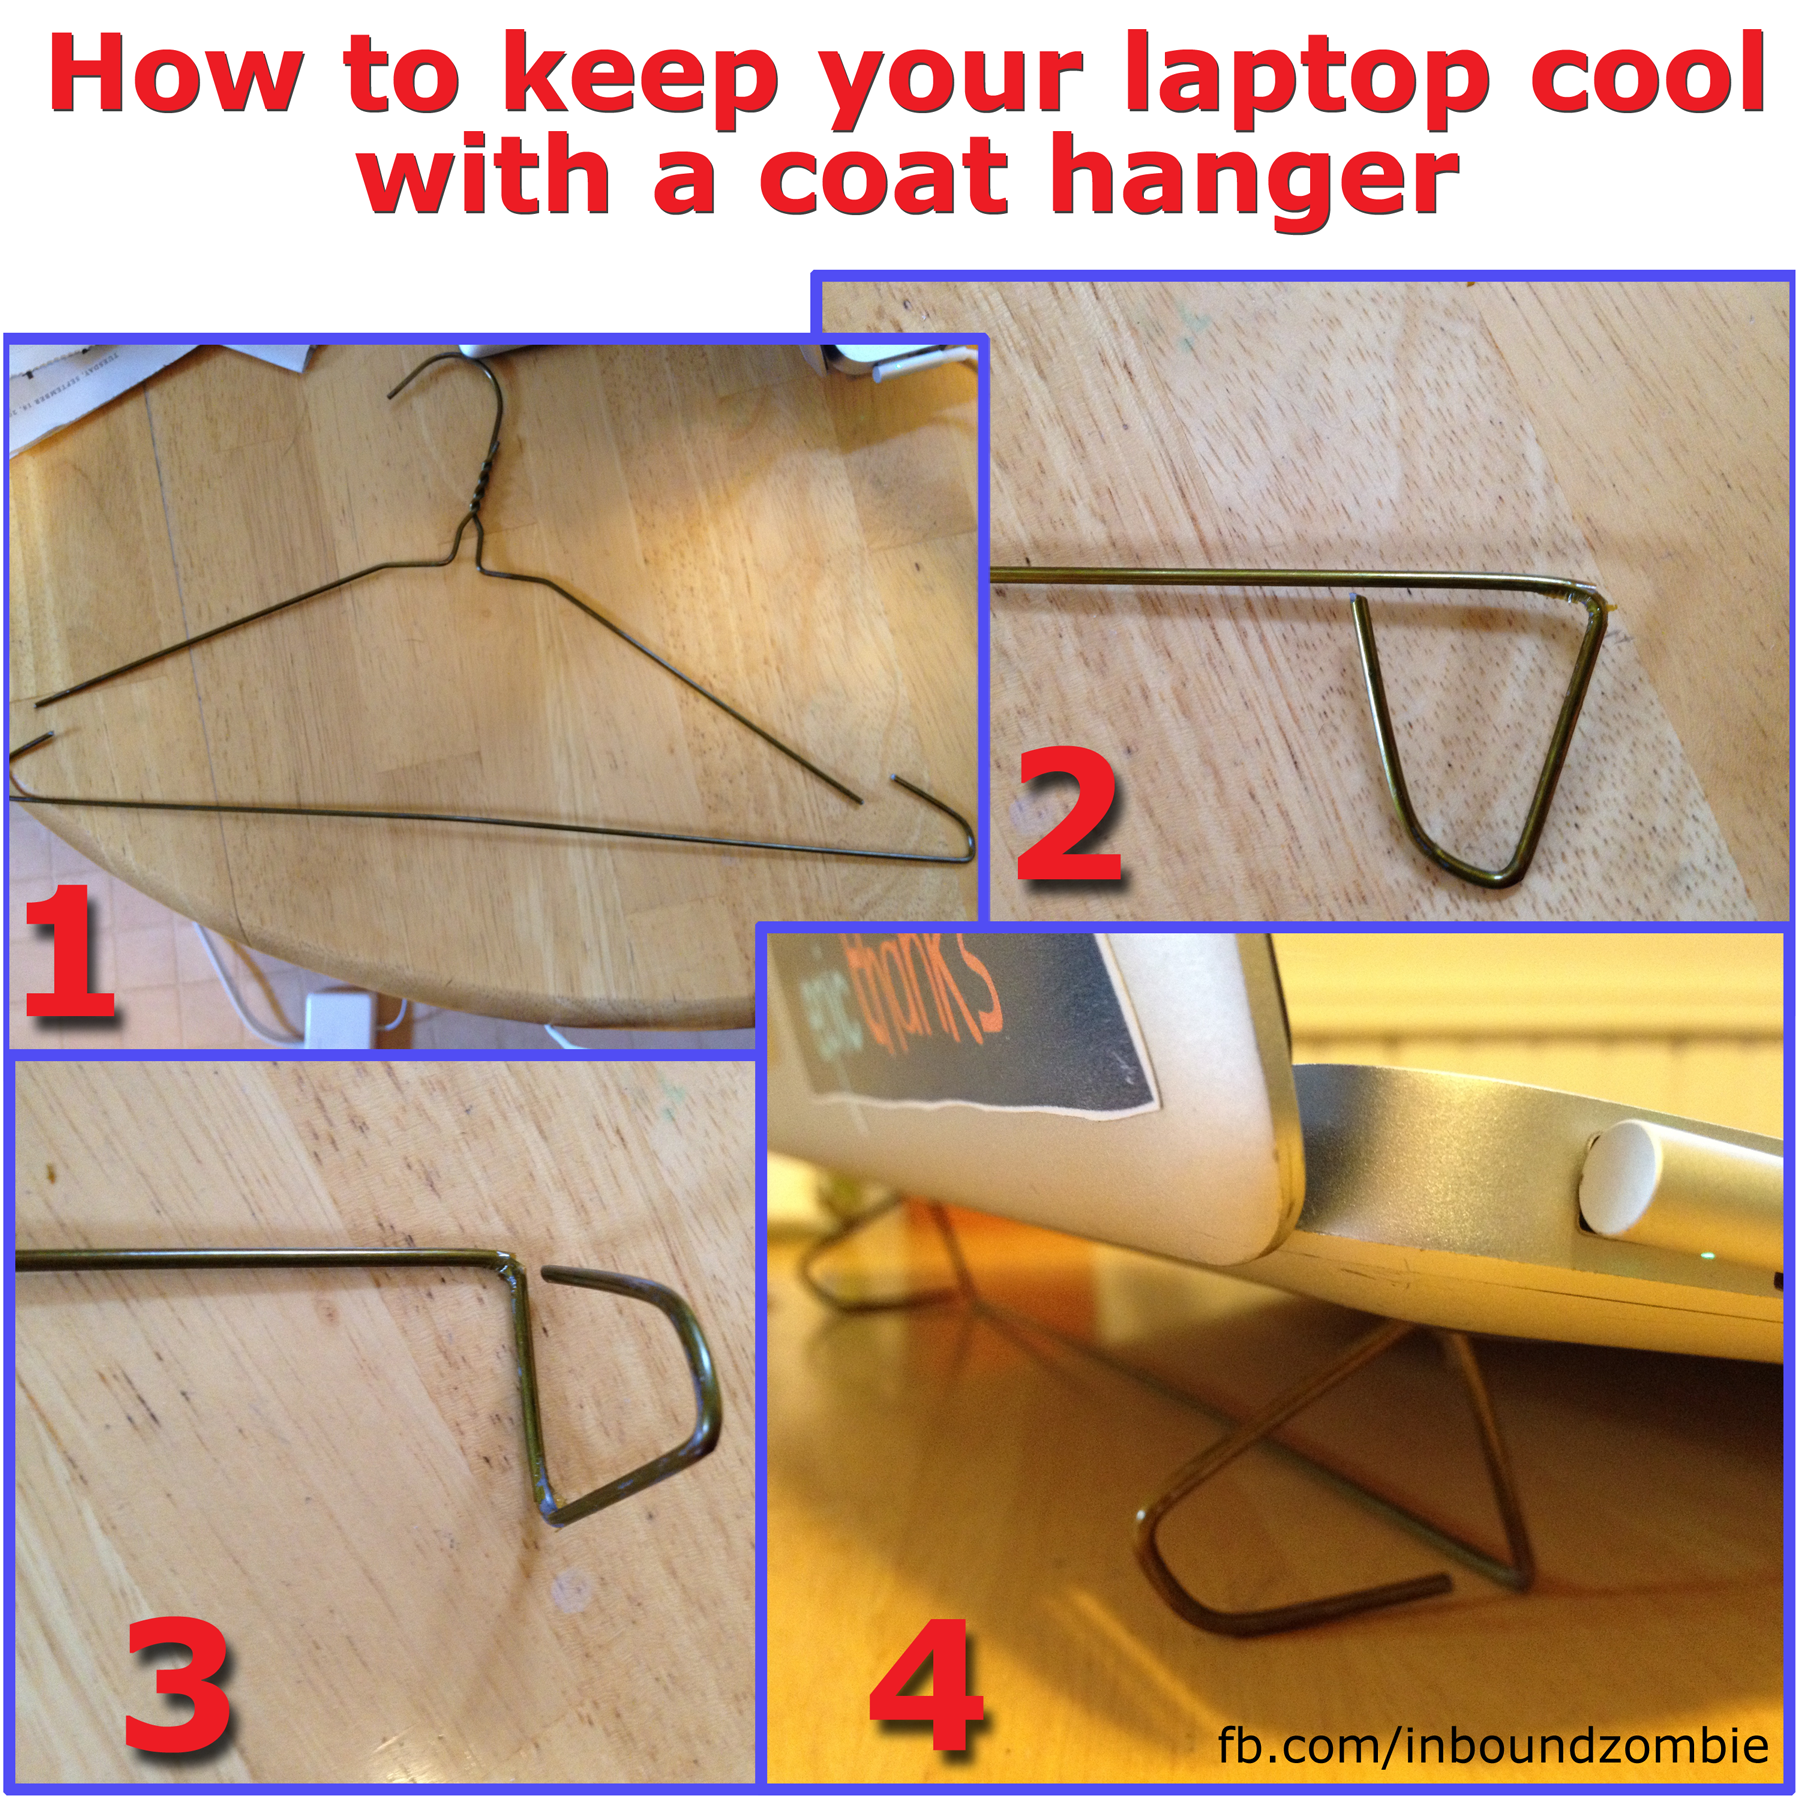 How to keep your laptop cool with a coat hanger